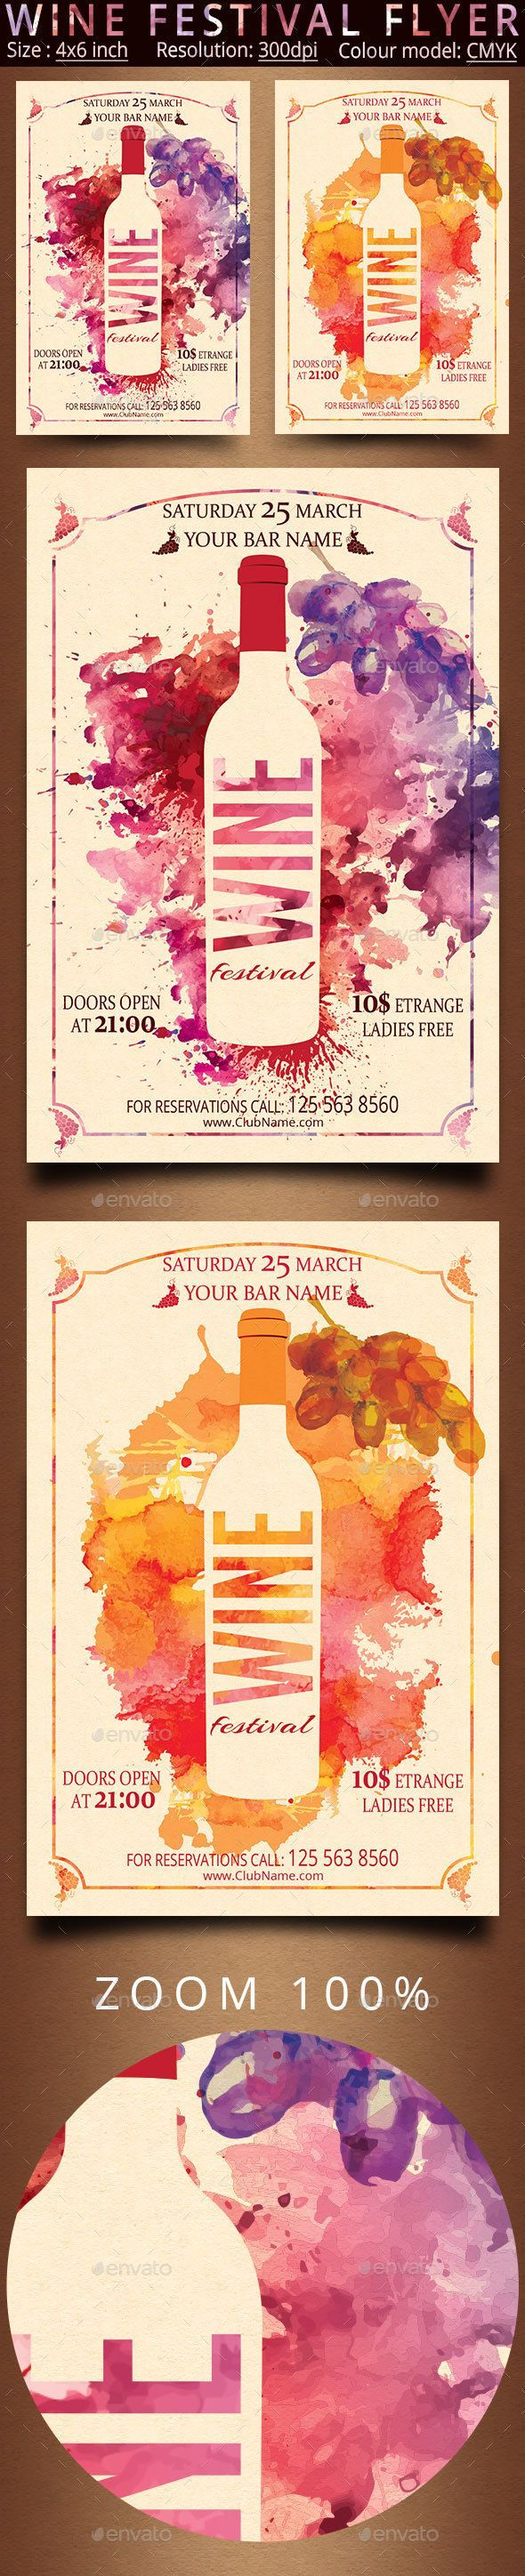 Poster design template free - Wine Festival Flyer Graphic Design Flyerevent Poster